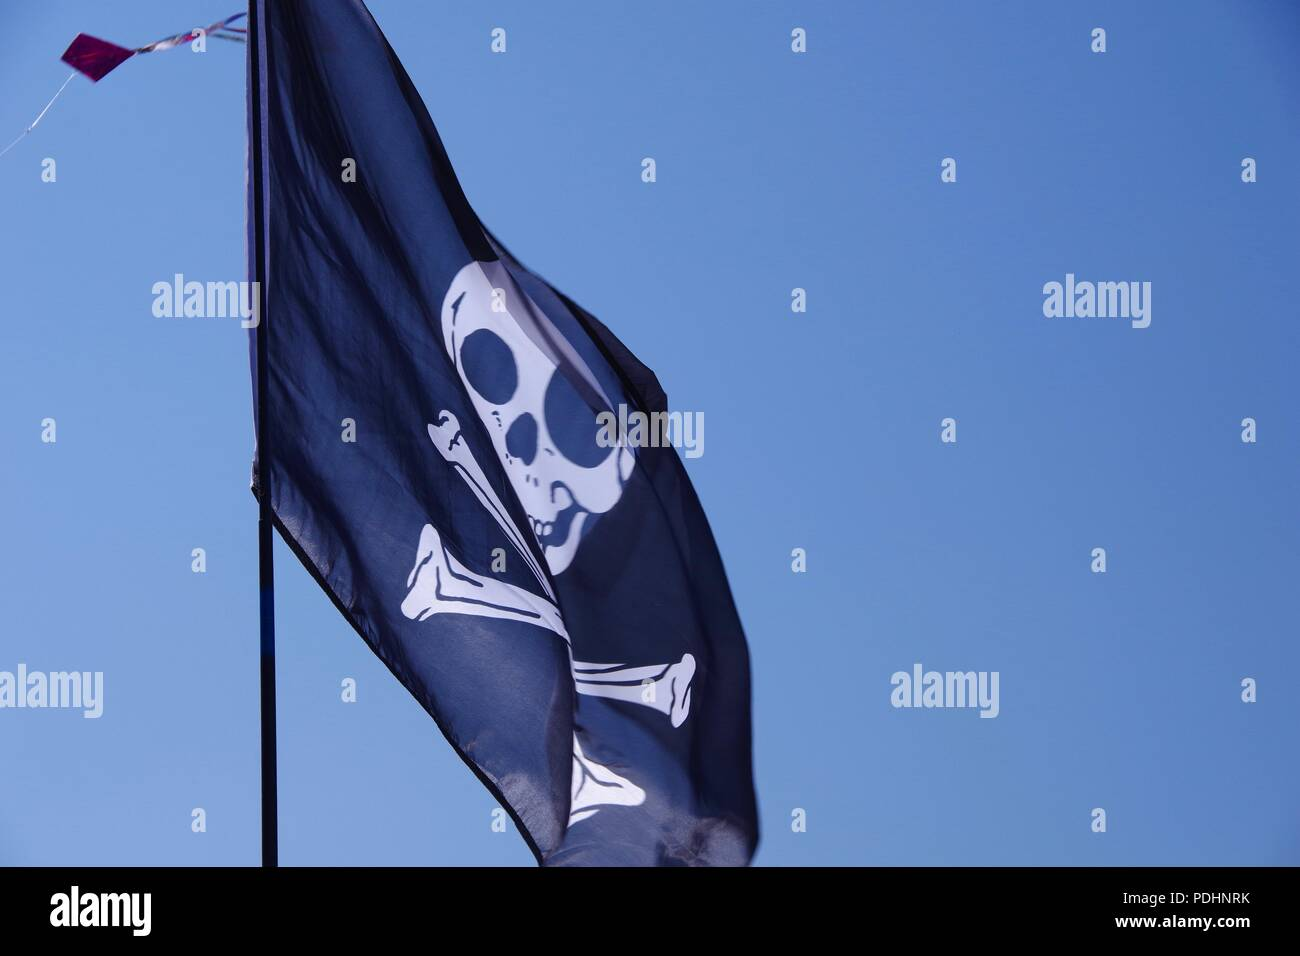 Jolly Roger Pirate Flag Flying against a Blue Sky. Sidmouth Folk Festival, East Devon, UK. August, 2018. Stock Photo